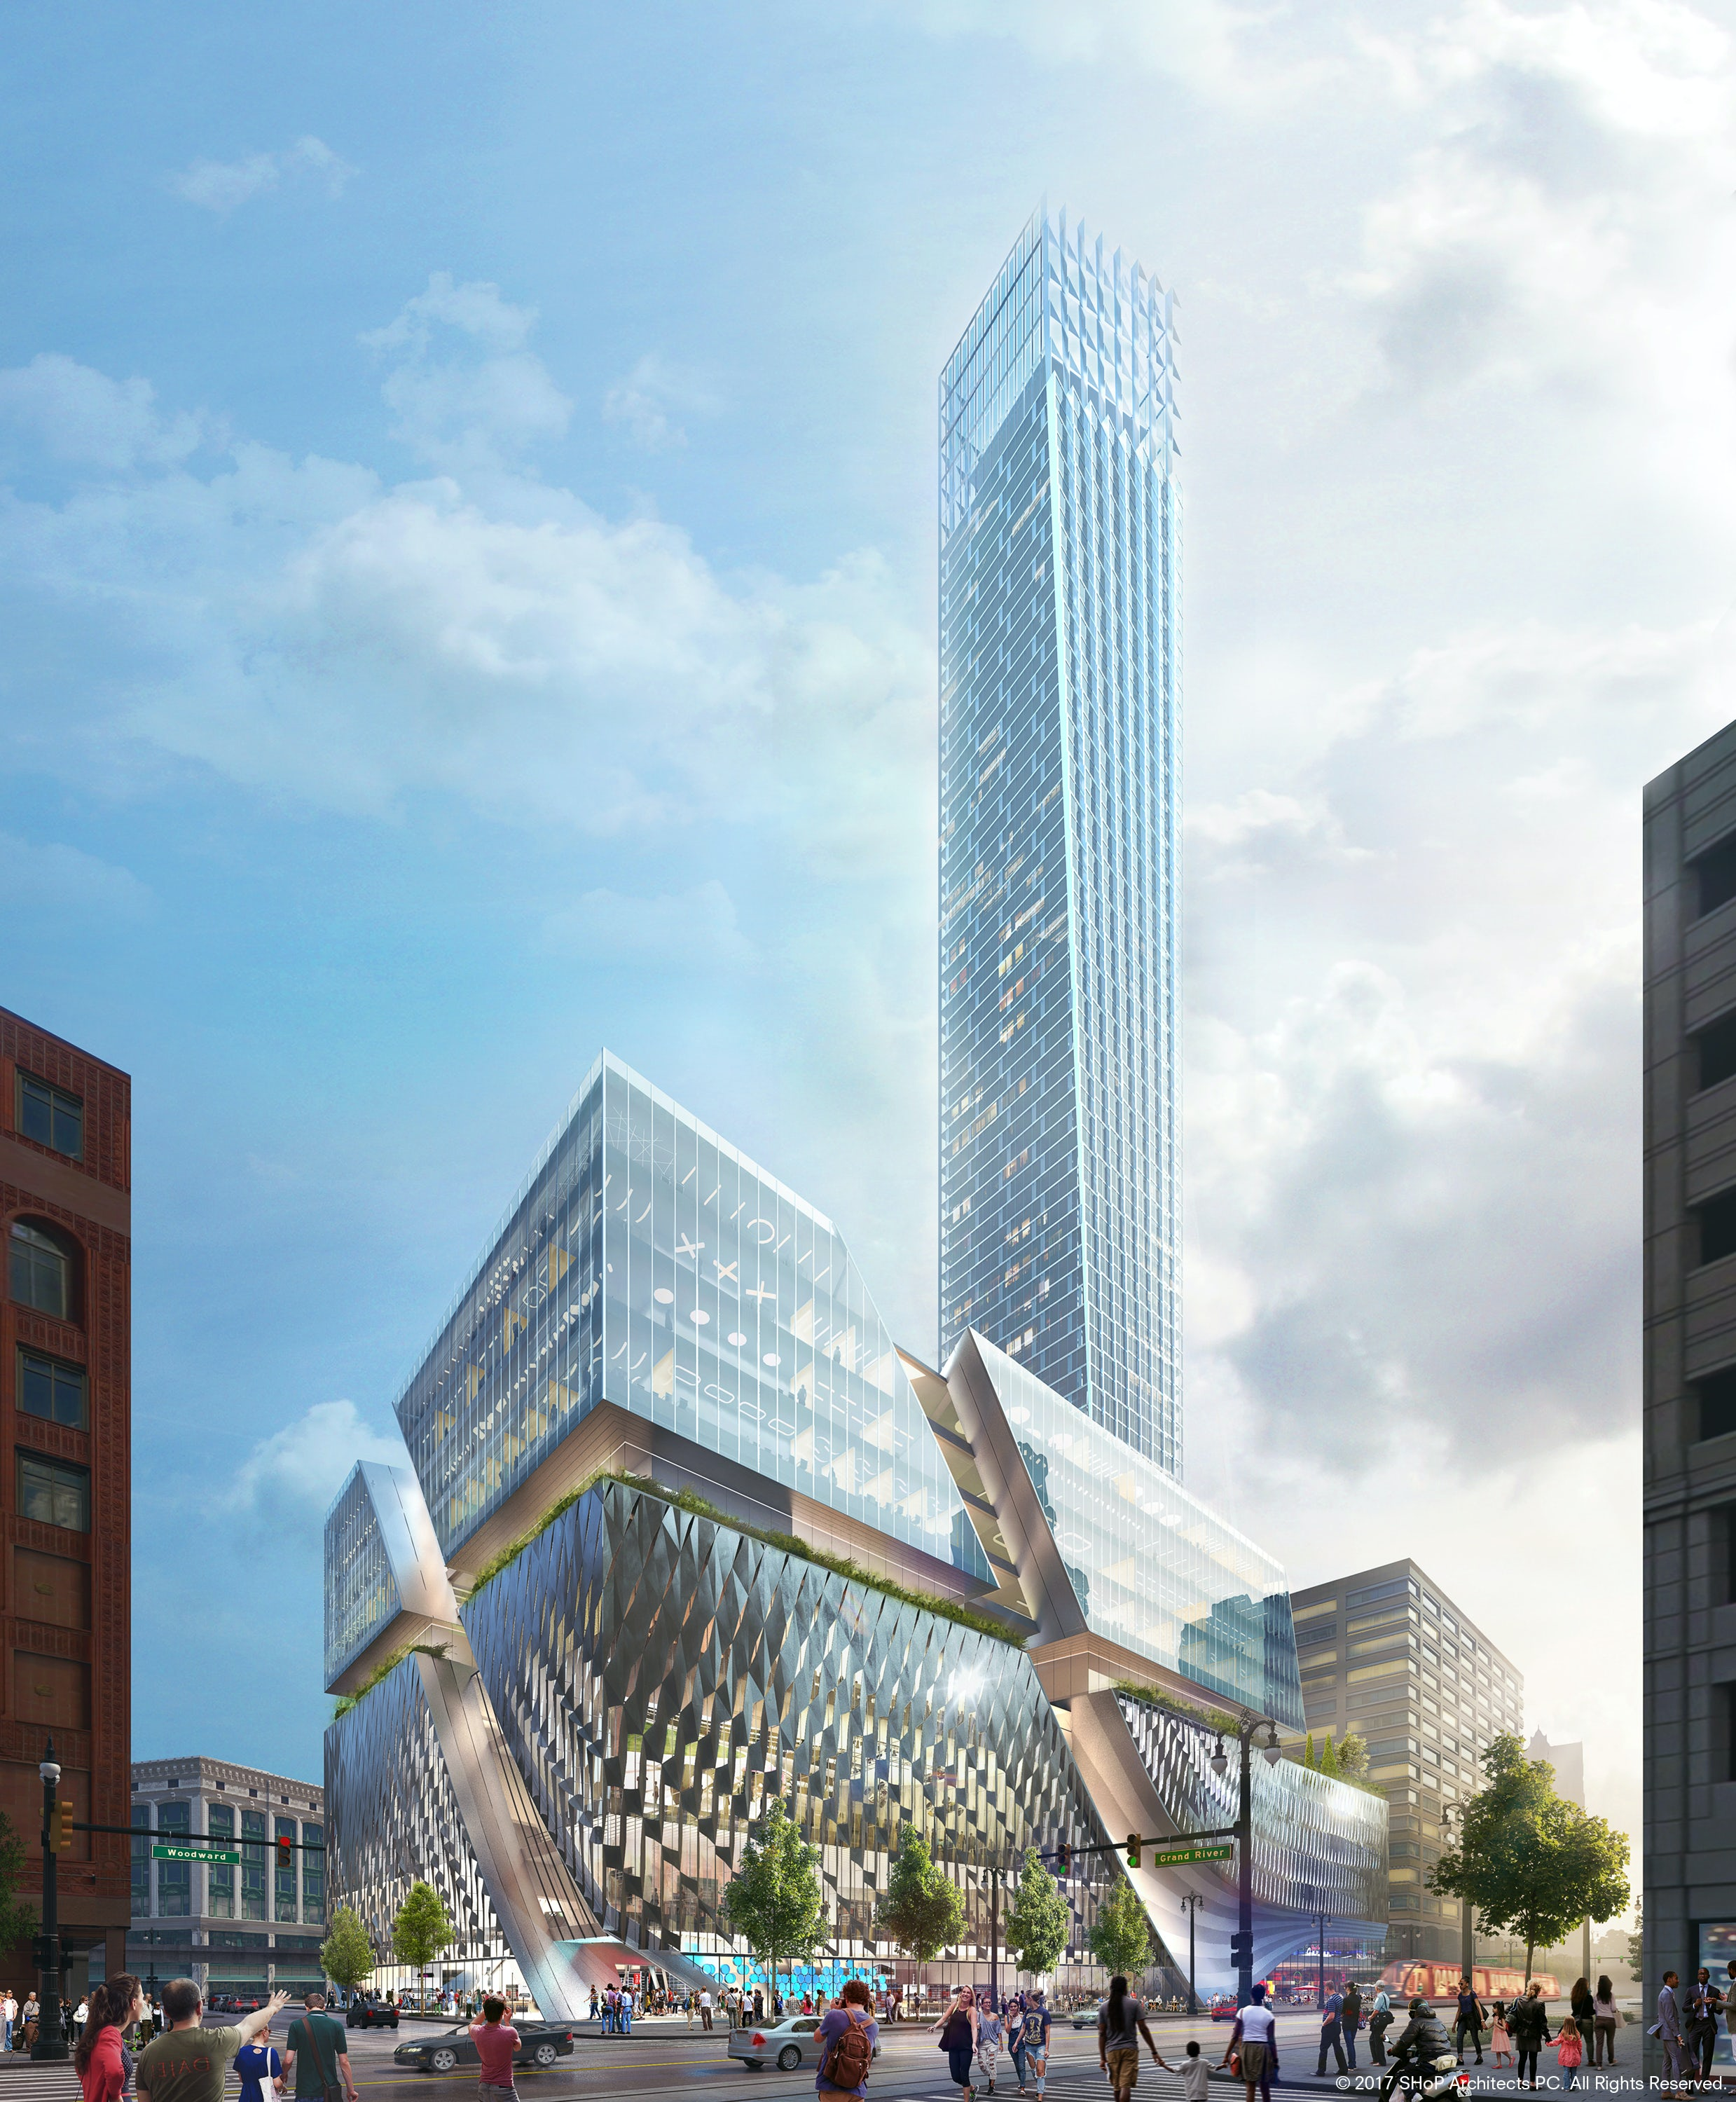 Constructing a Comeback: SHoP Unveils Ambitious Plans for the Tallest Tower in Detroit